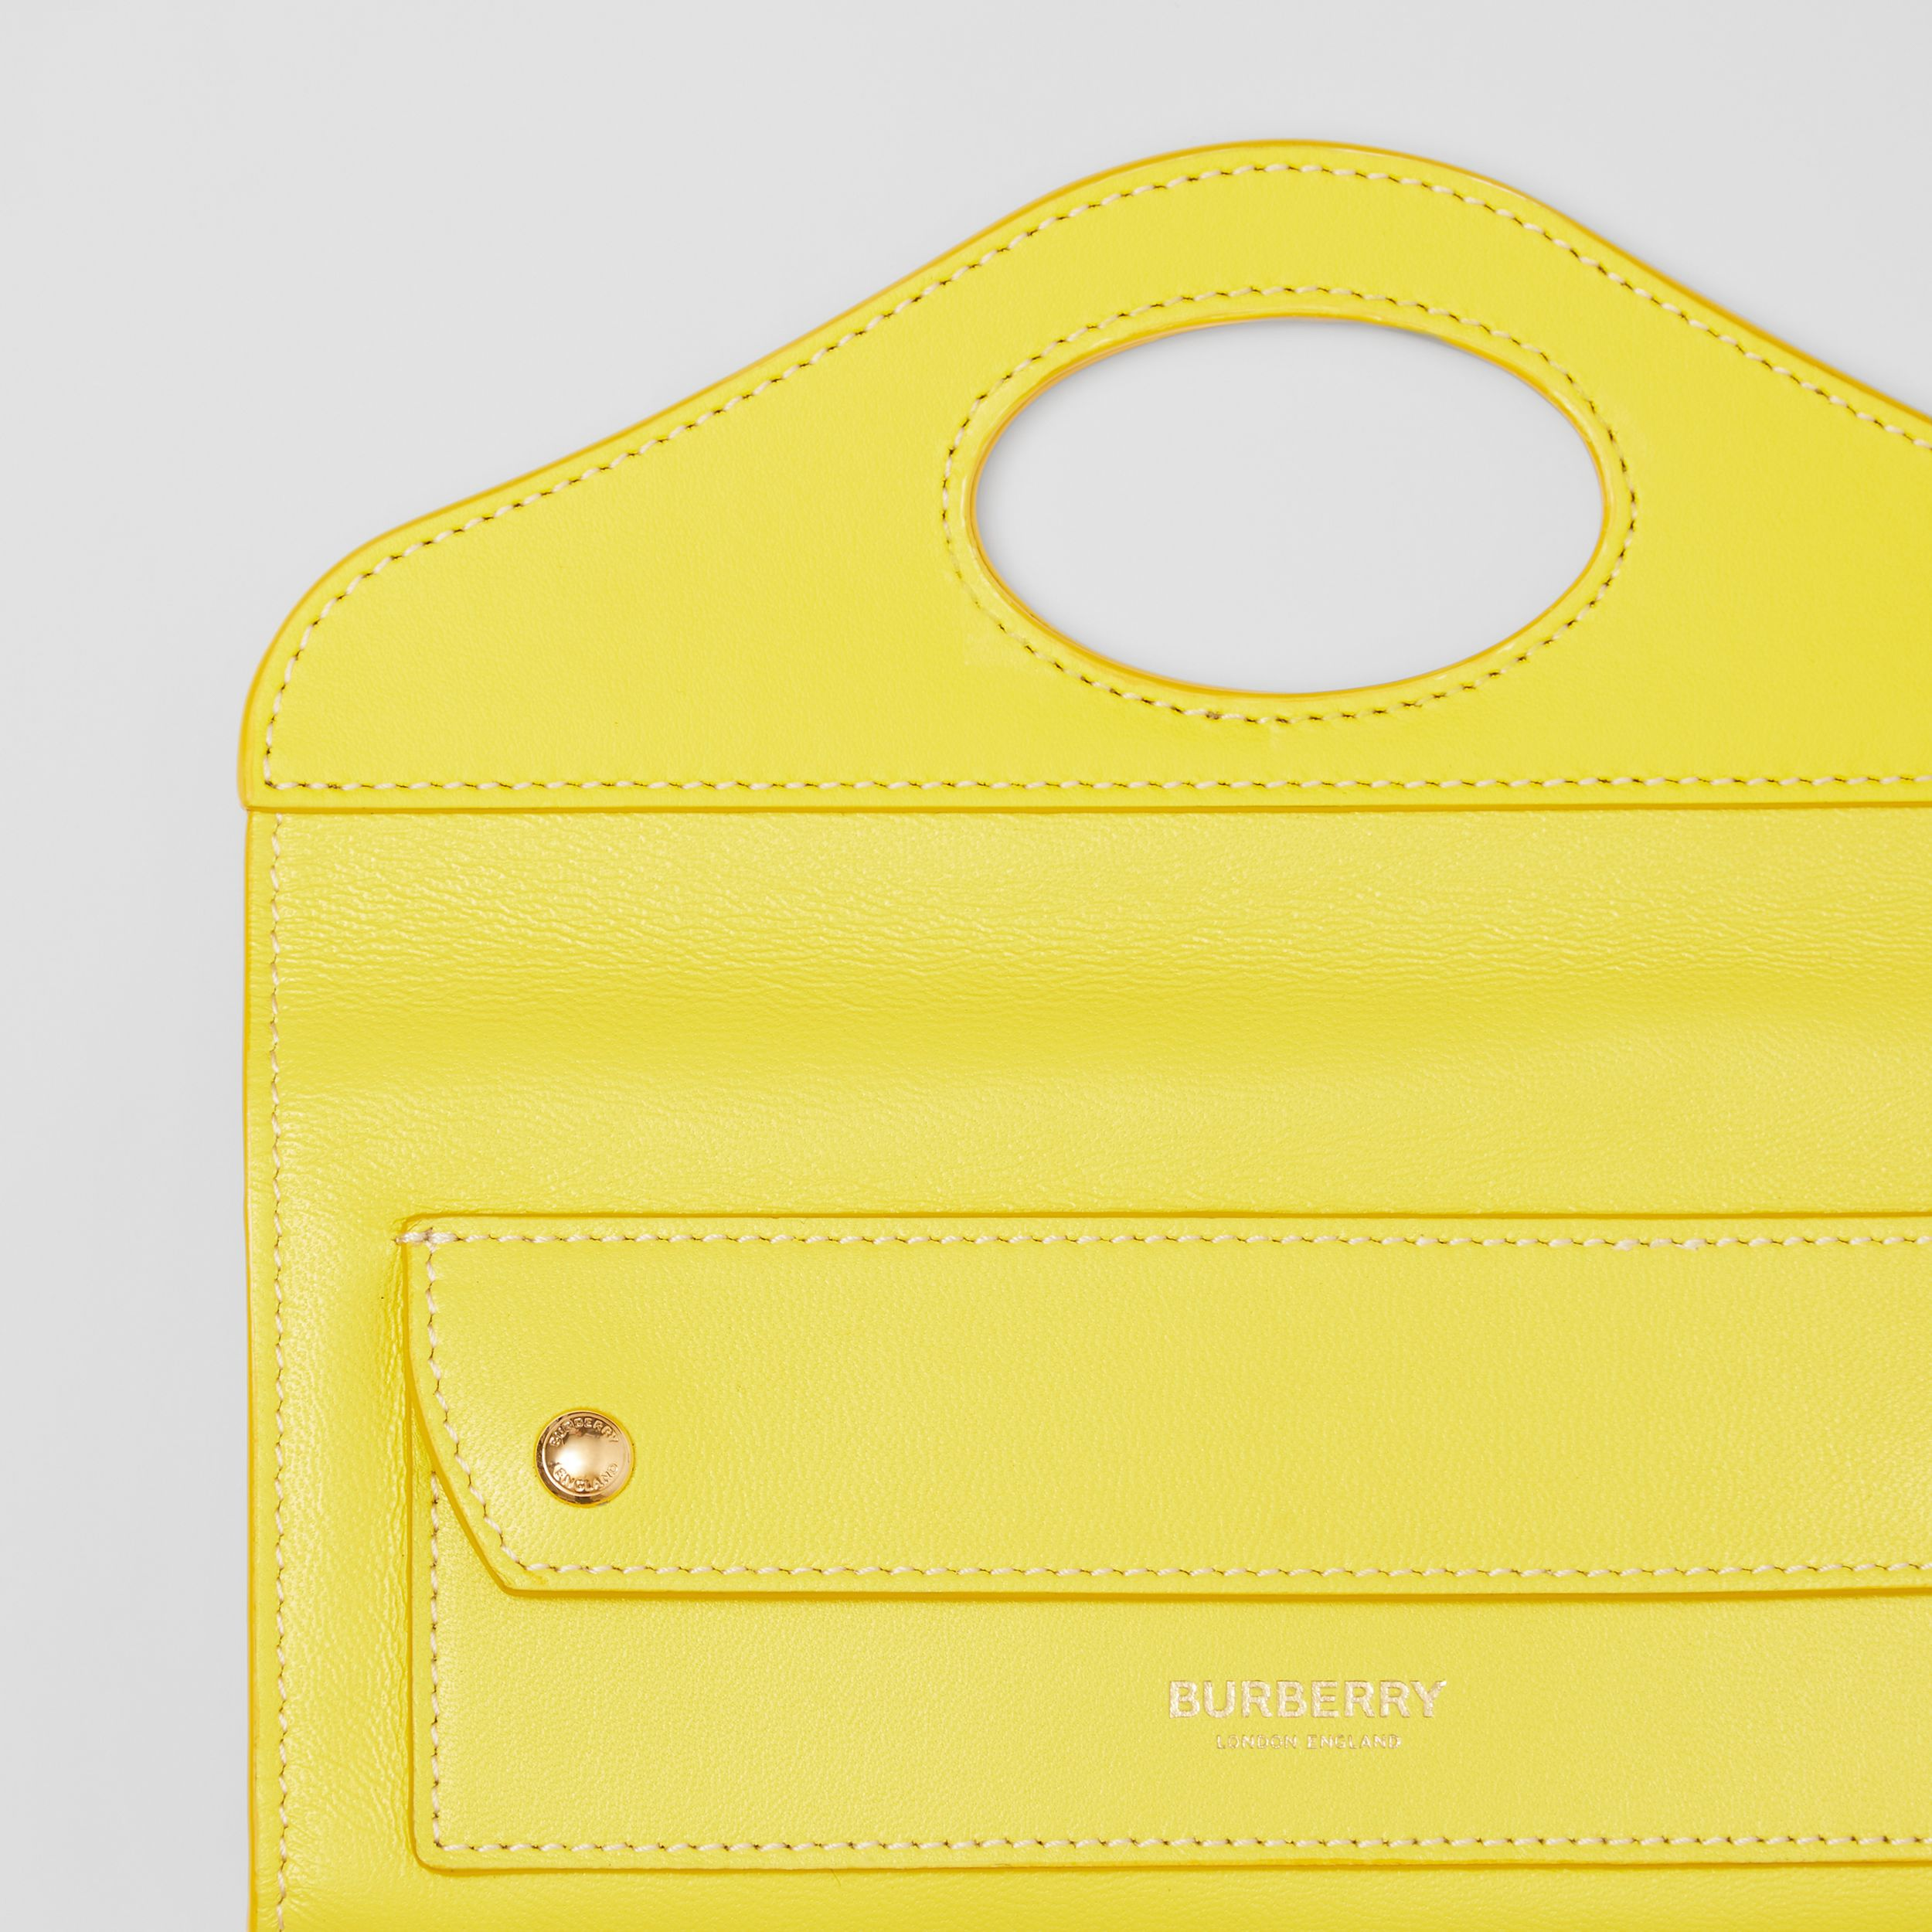 Mini Topstitched Lambskin Pocket Clutch in Marigold Yellow - Women | Burberry - 2